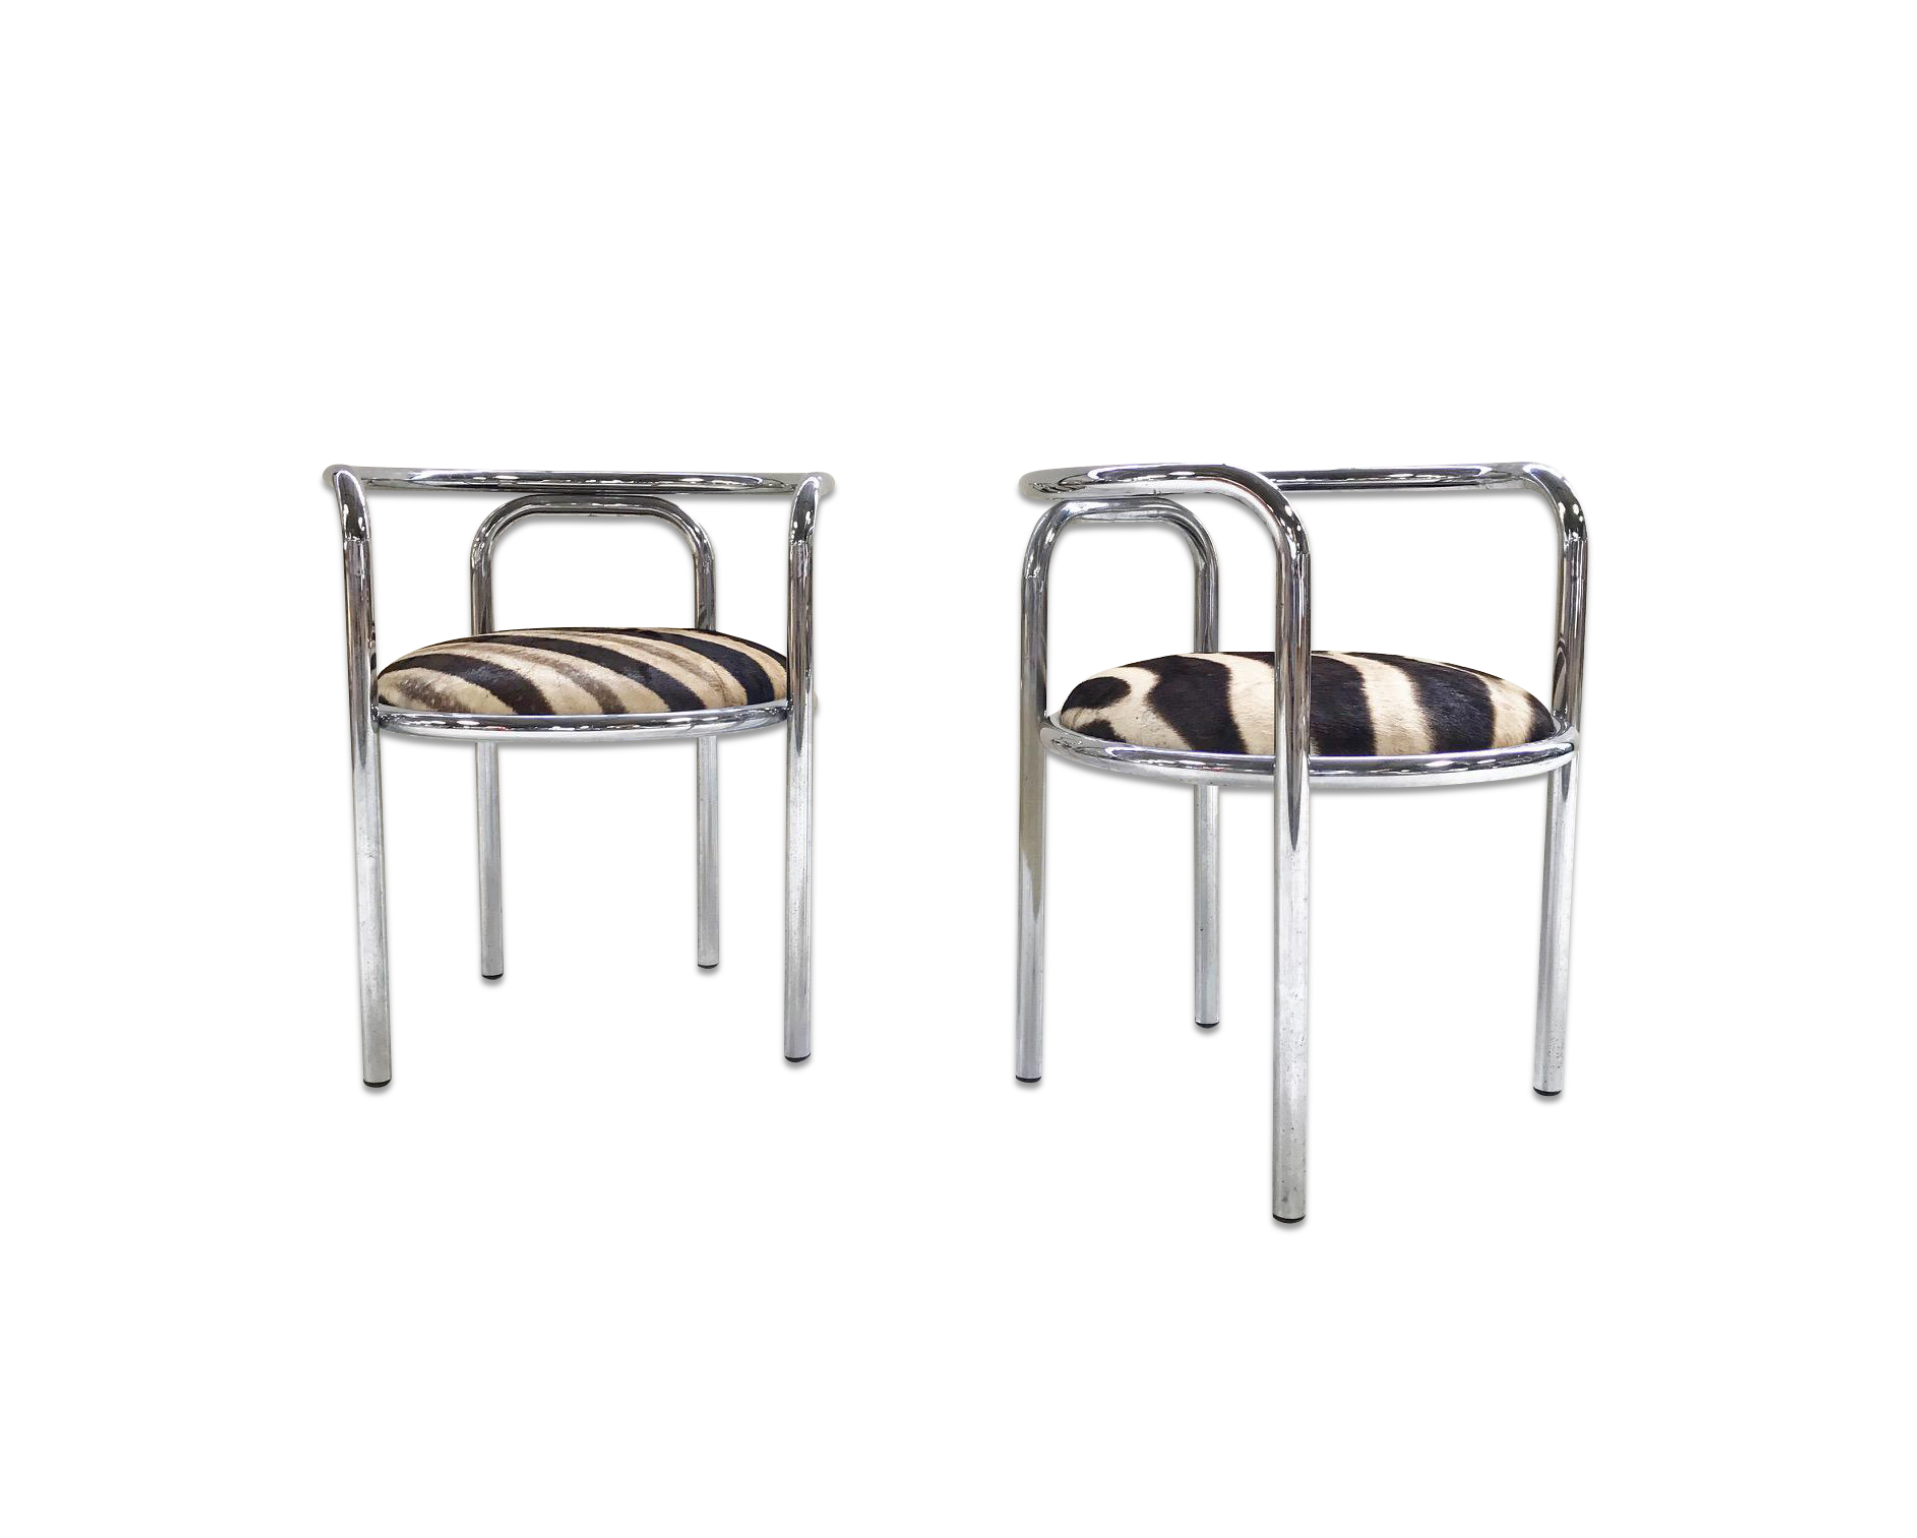 Danish Chrome Chairs in Zebra Hide, pair - FORSYTH